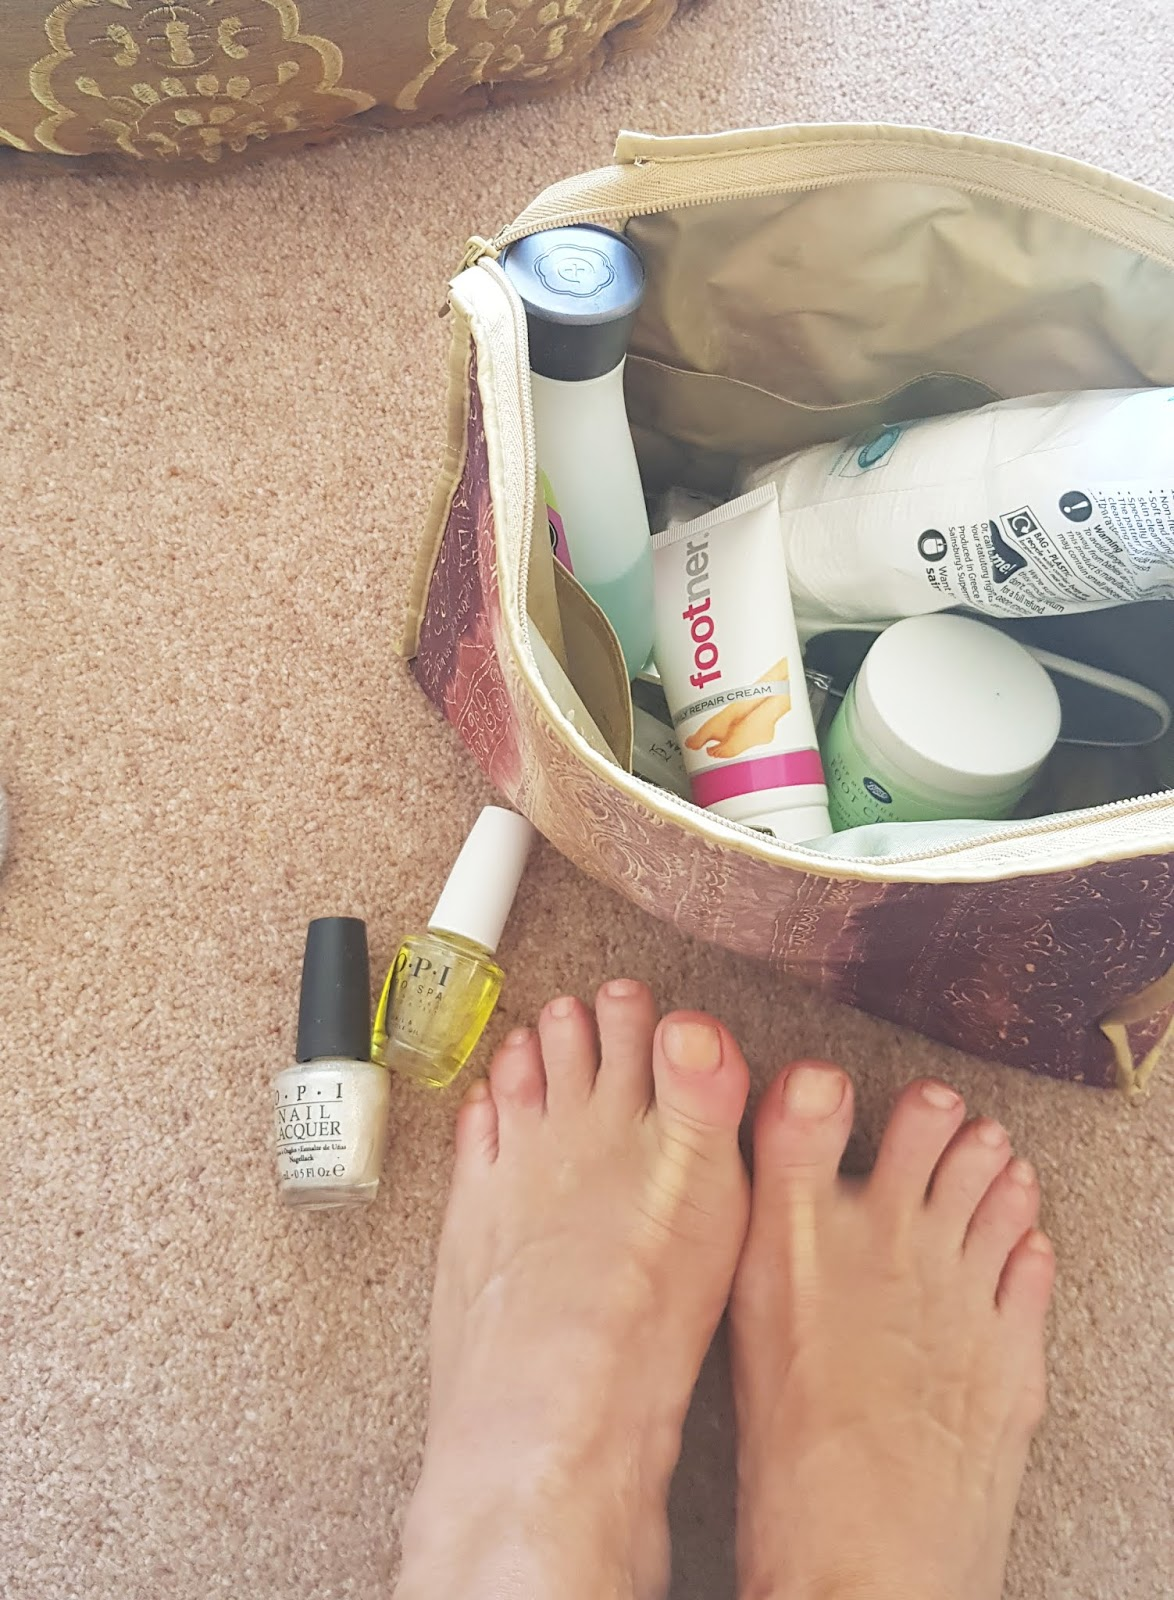 A home pedicure during lockdown: various potions and lotions and pampered feet.